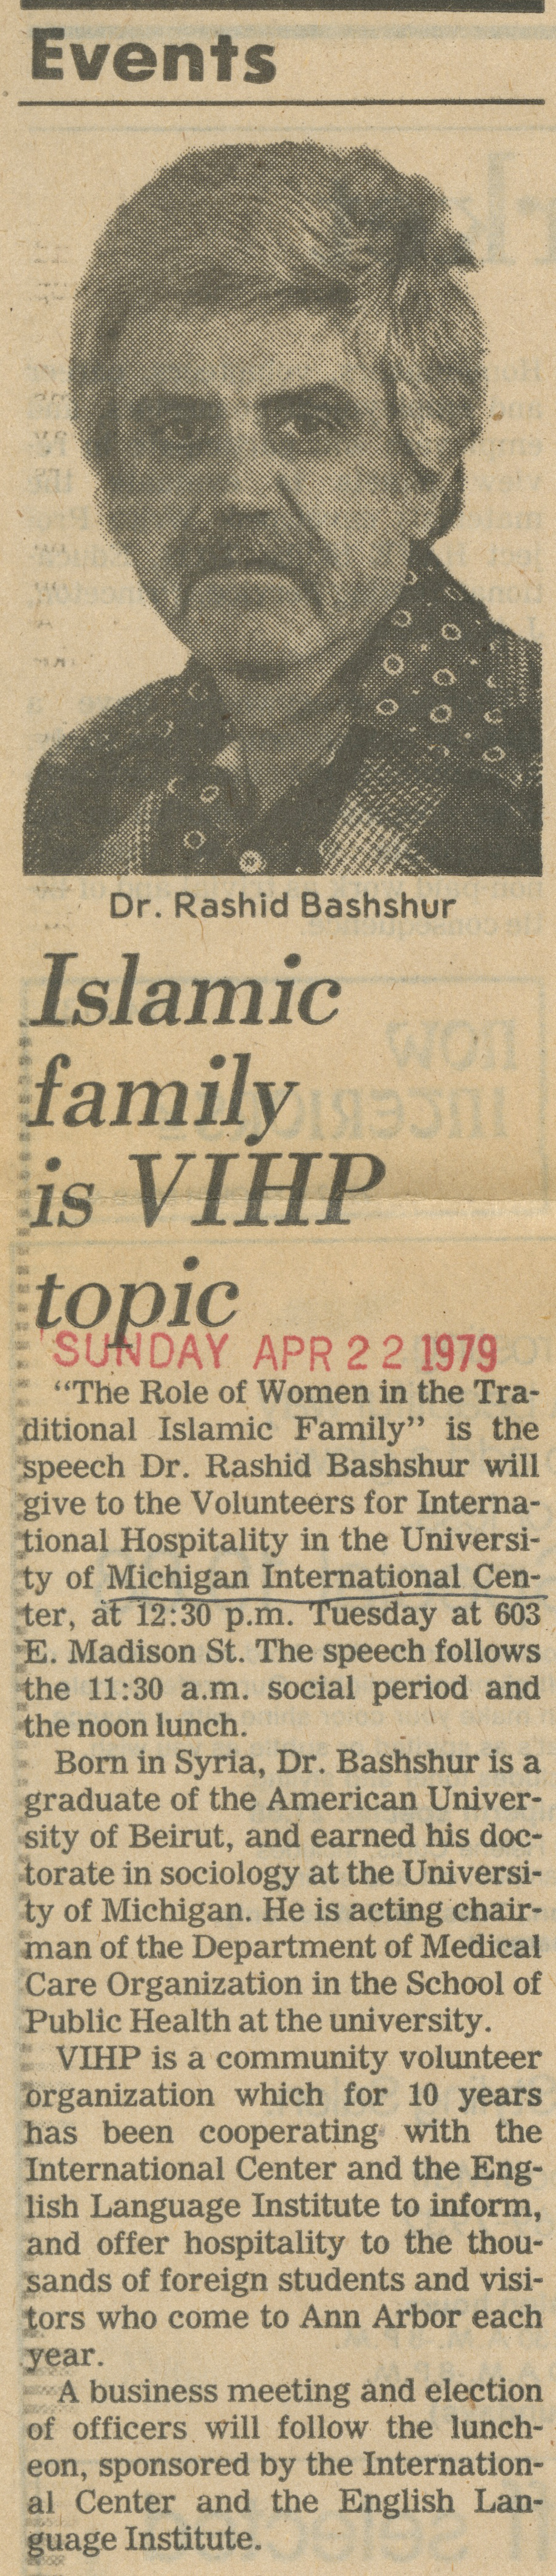 Islamic Family Is VIHP Topic image